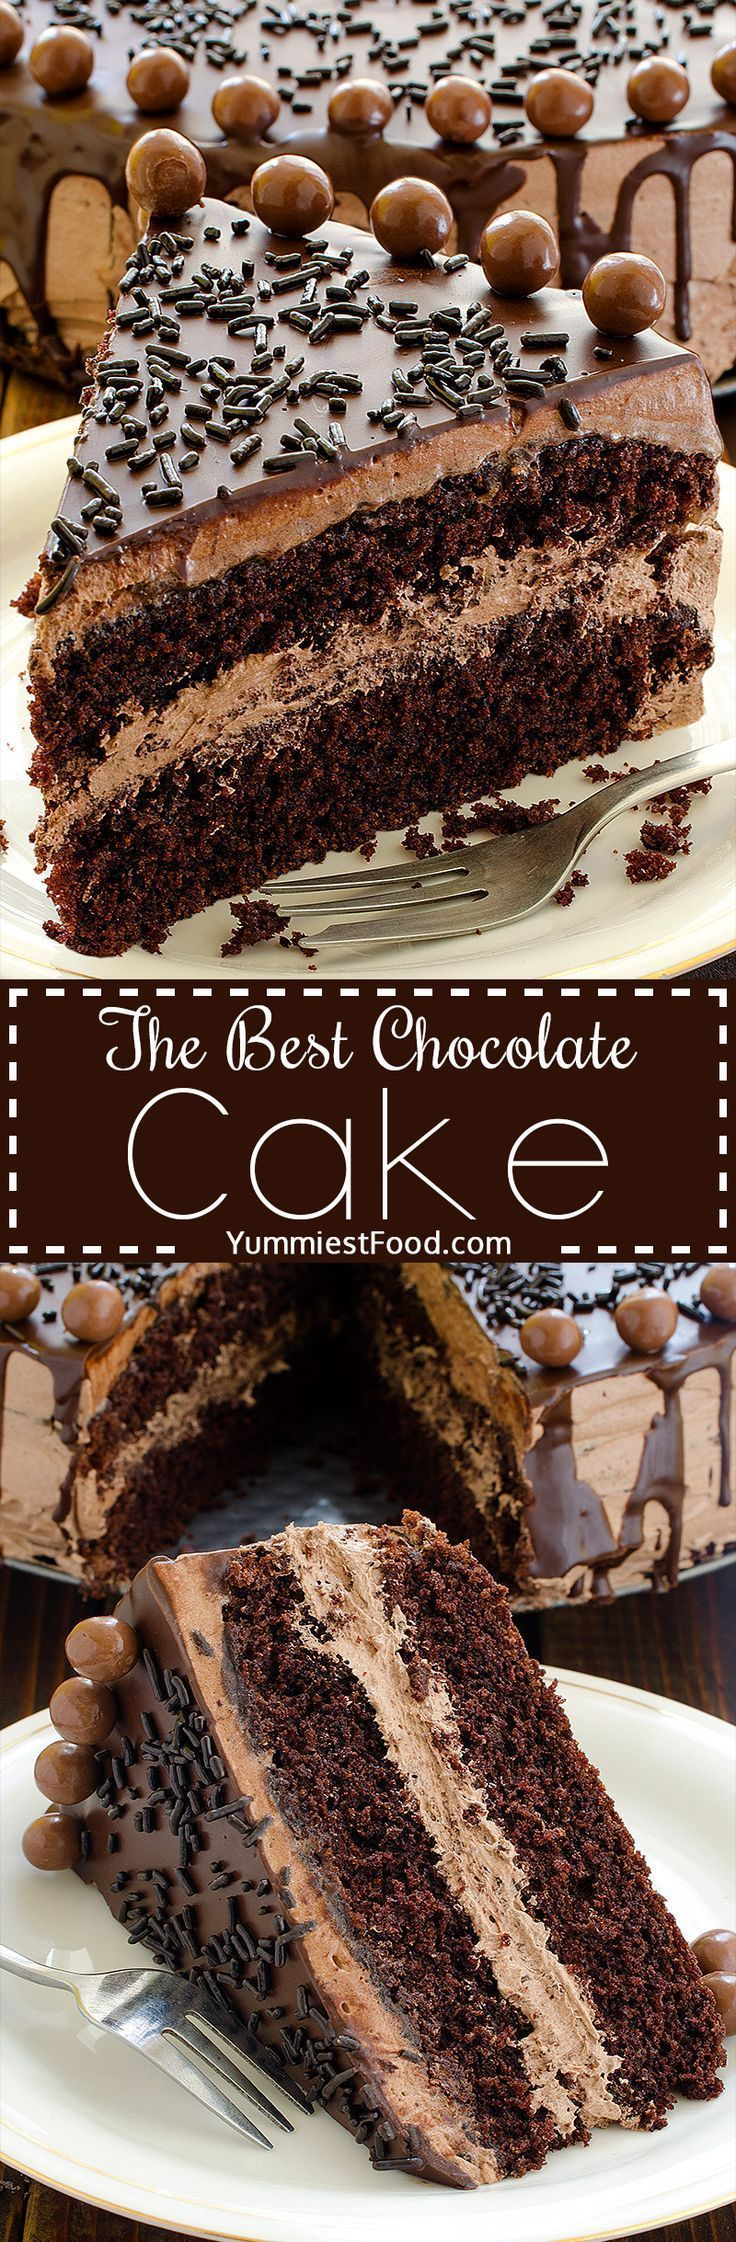 The BEST Chocolate Cake The BEST Chocolate Cake - perfect cake for chocolate lovers! Soft, tasty and very creamy! Great Combination of Chocolate and Coffee.